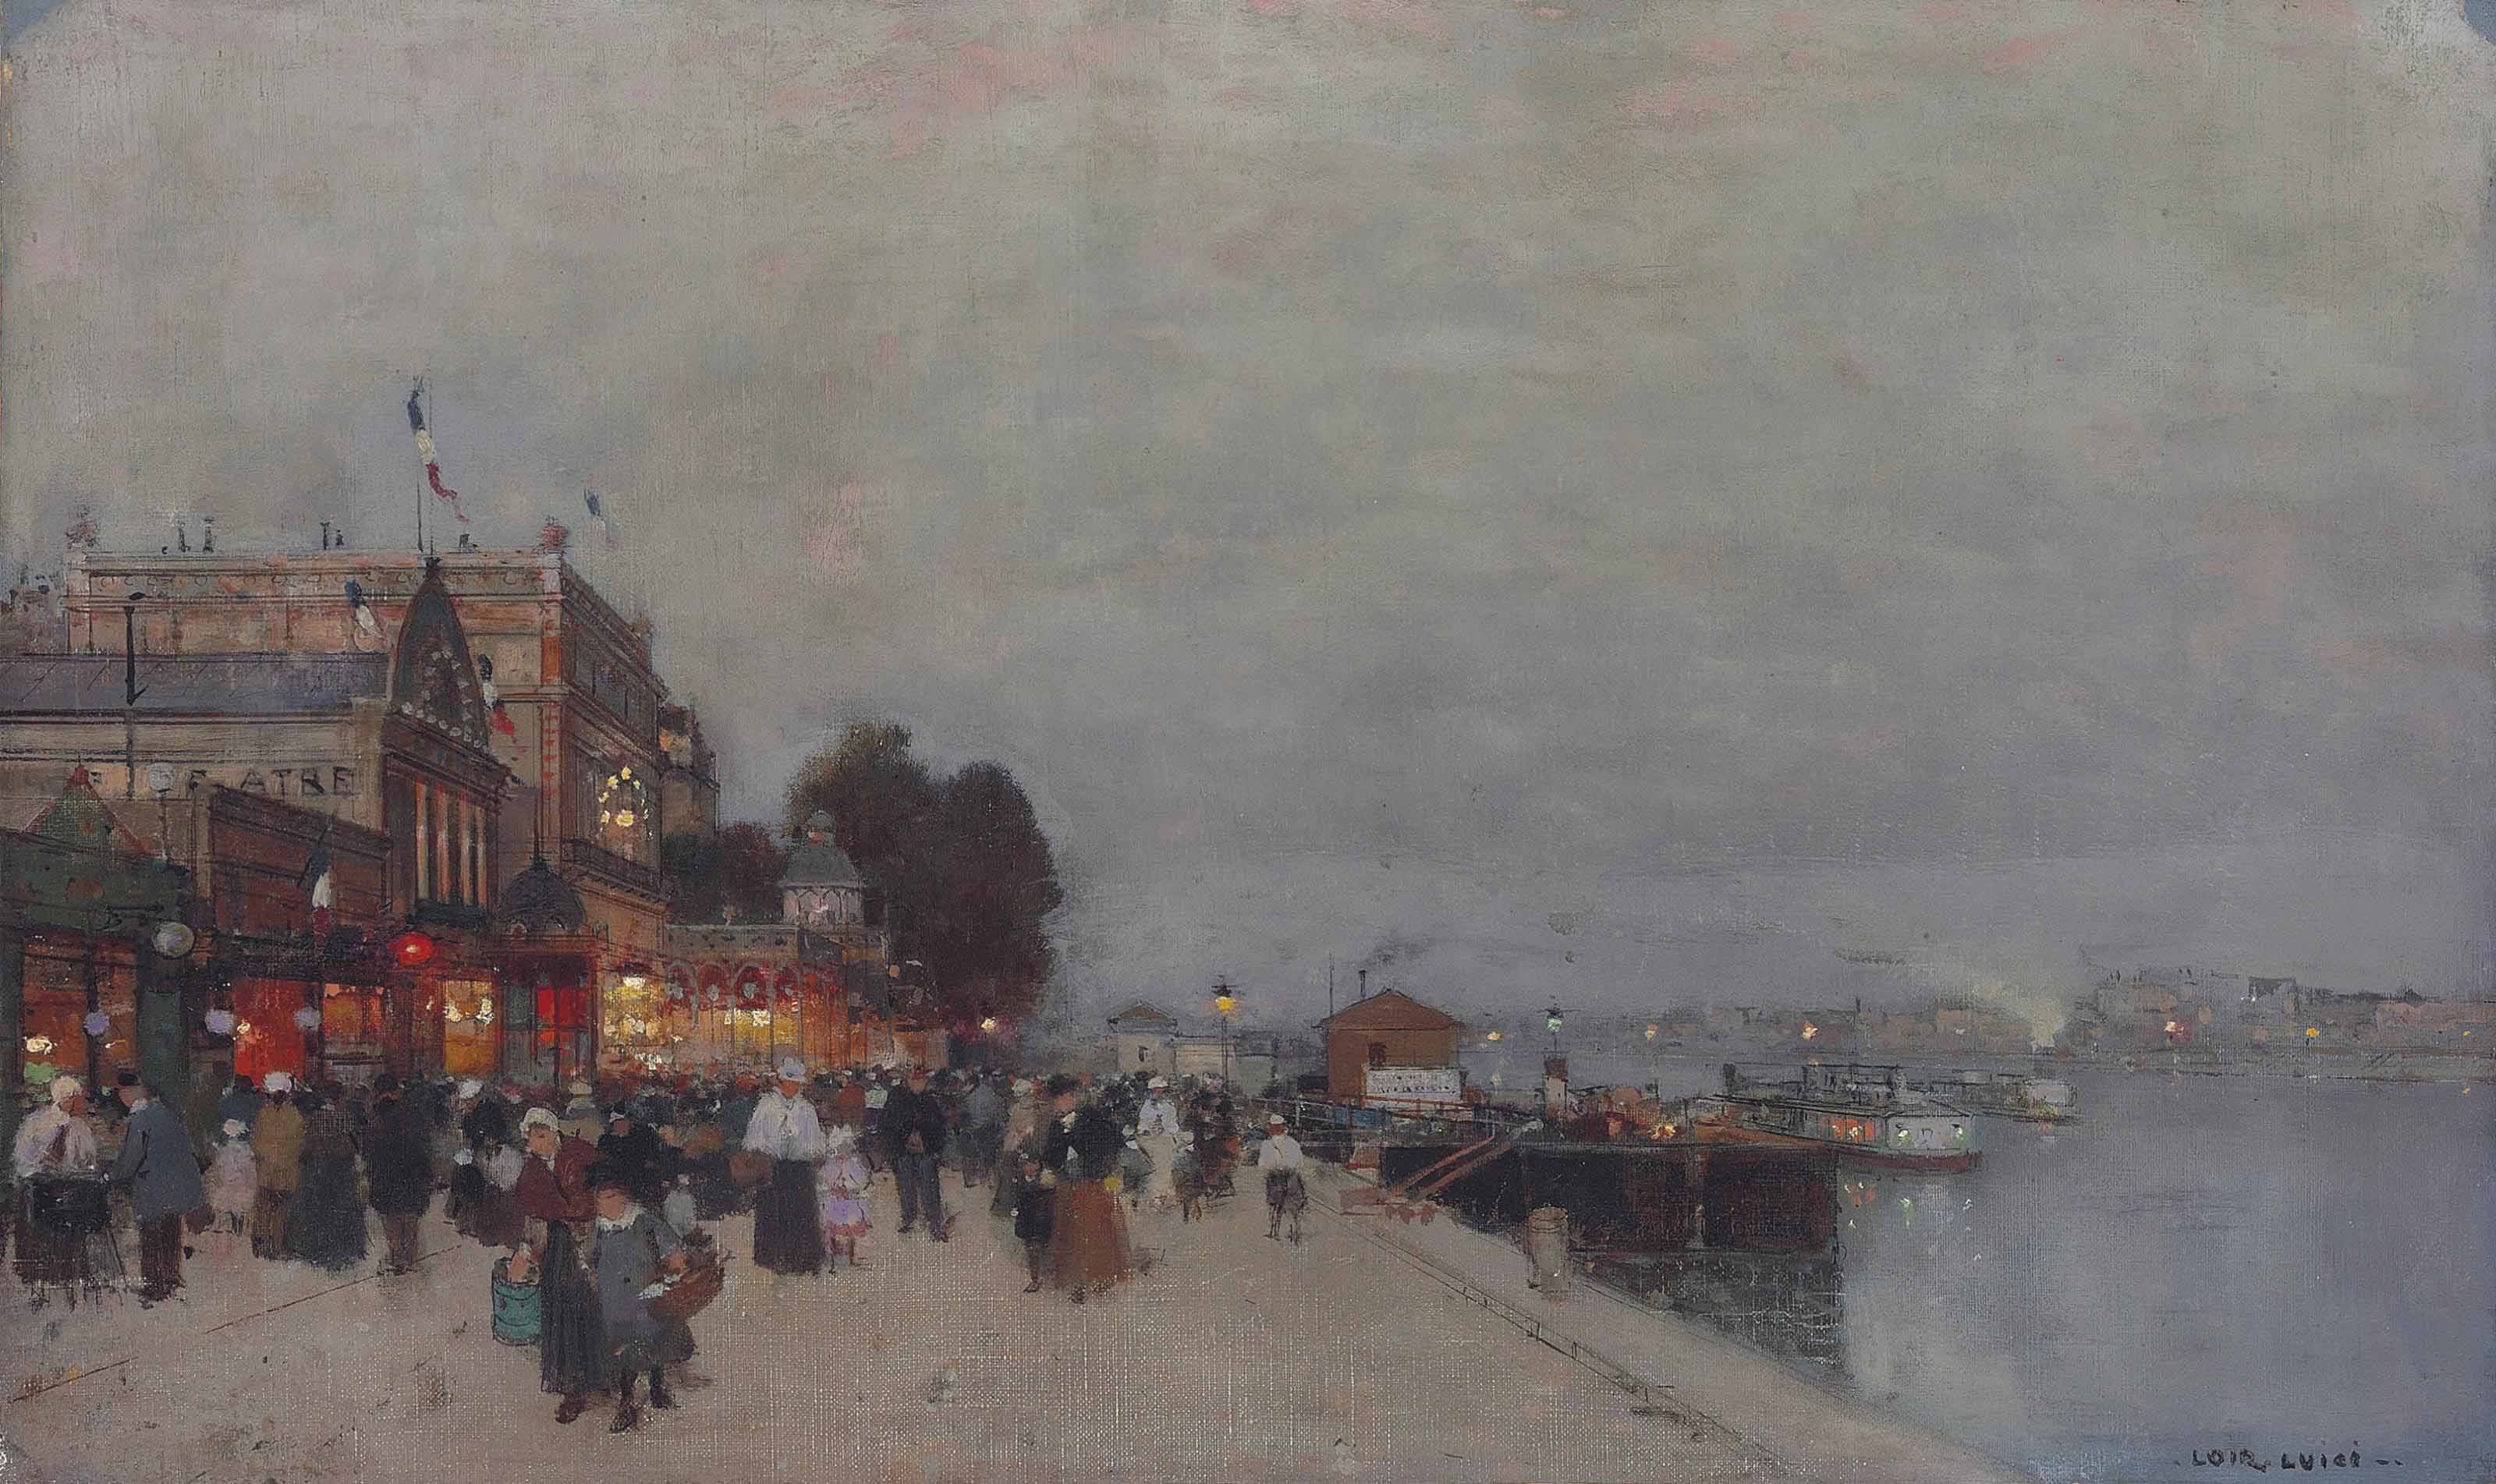 A crowd in front of a theatre on the bank of the Seine